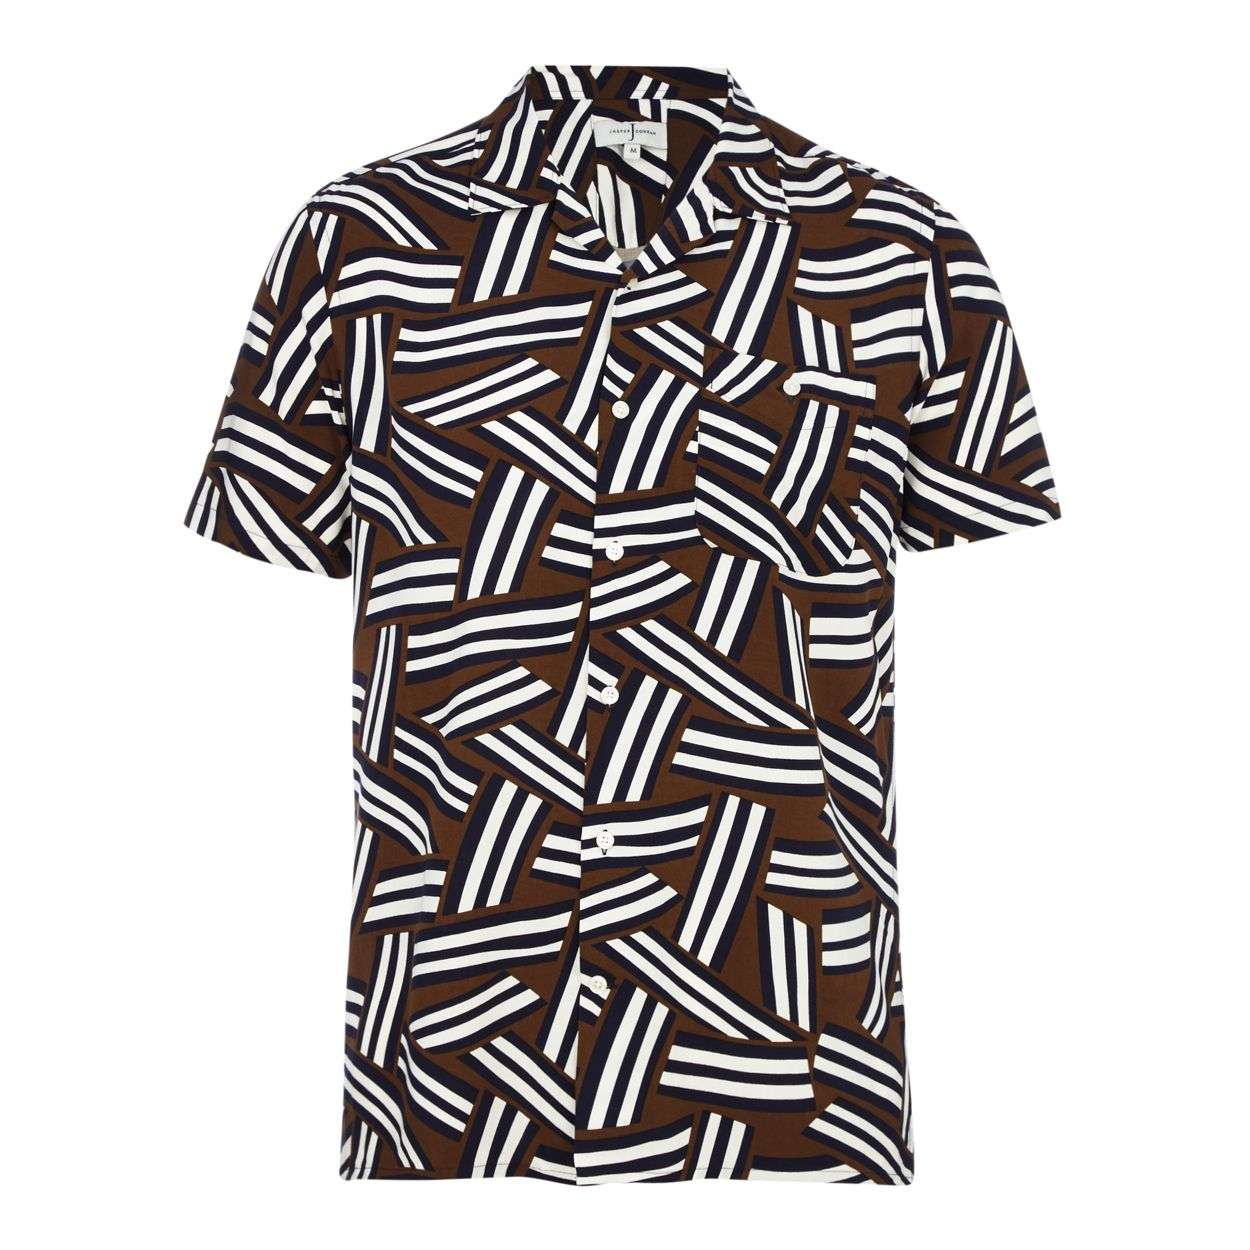 J by Jasper Conran Tan geometric print short sleeve shirt